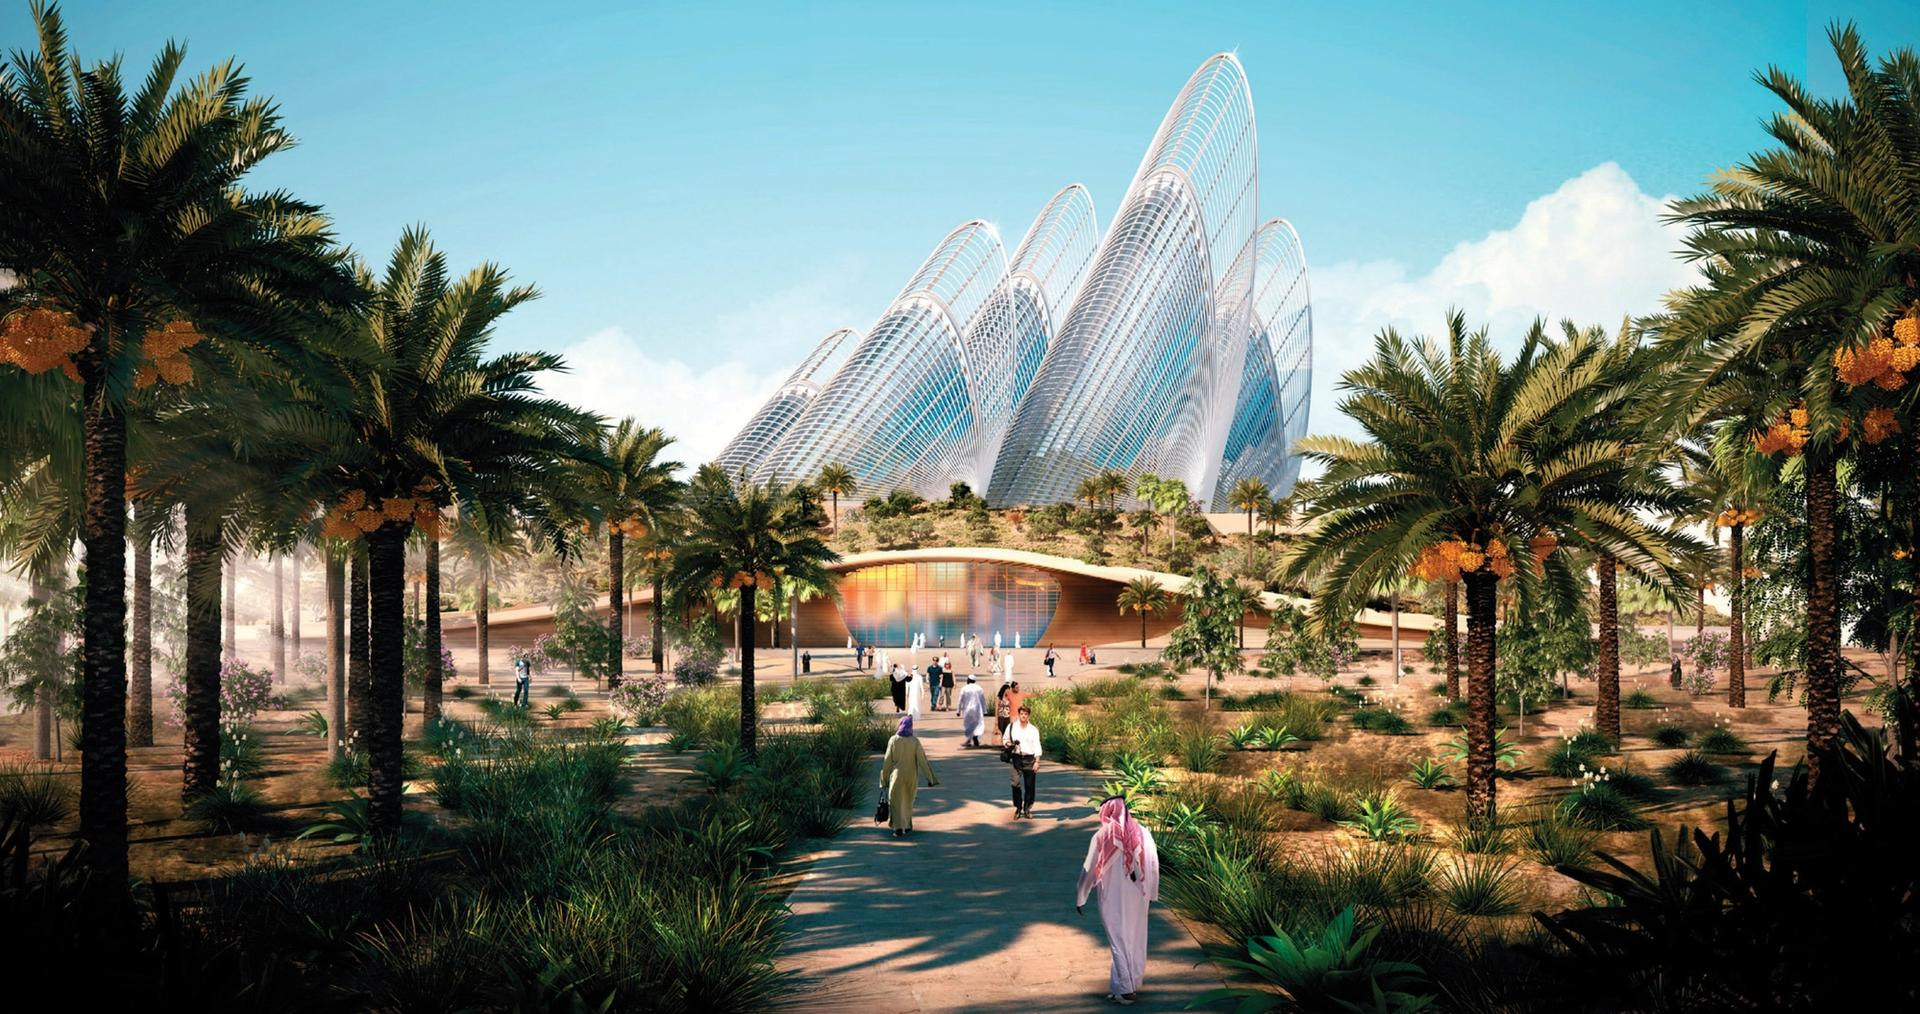 Rendering of the Zayed National Museum Foster and Partners